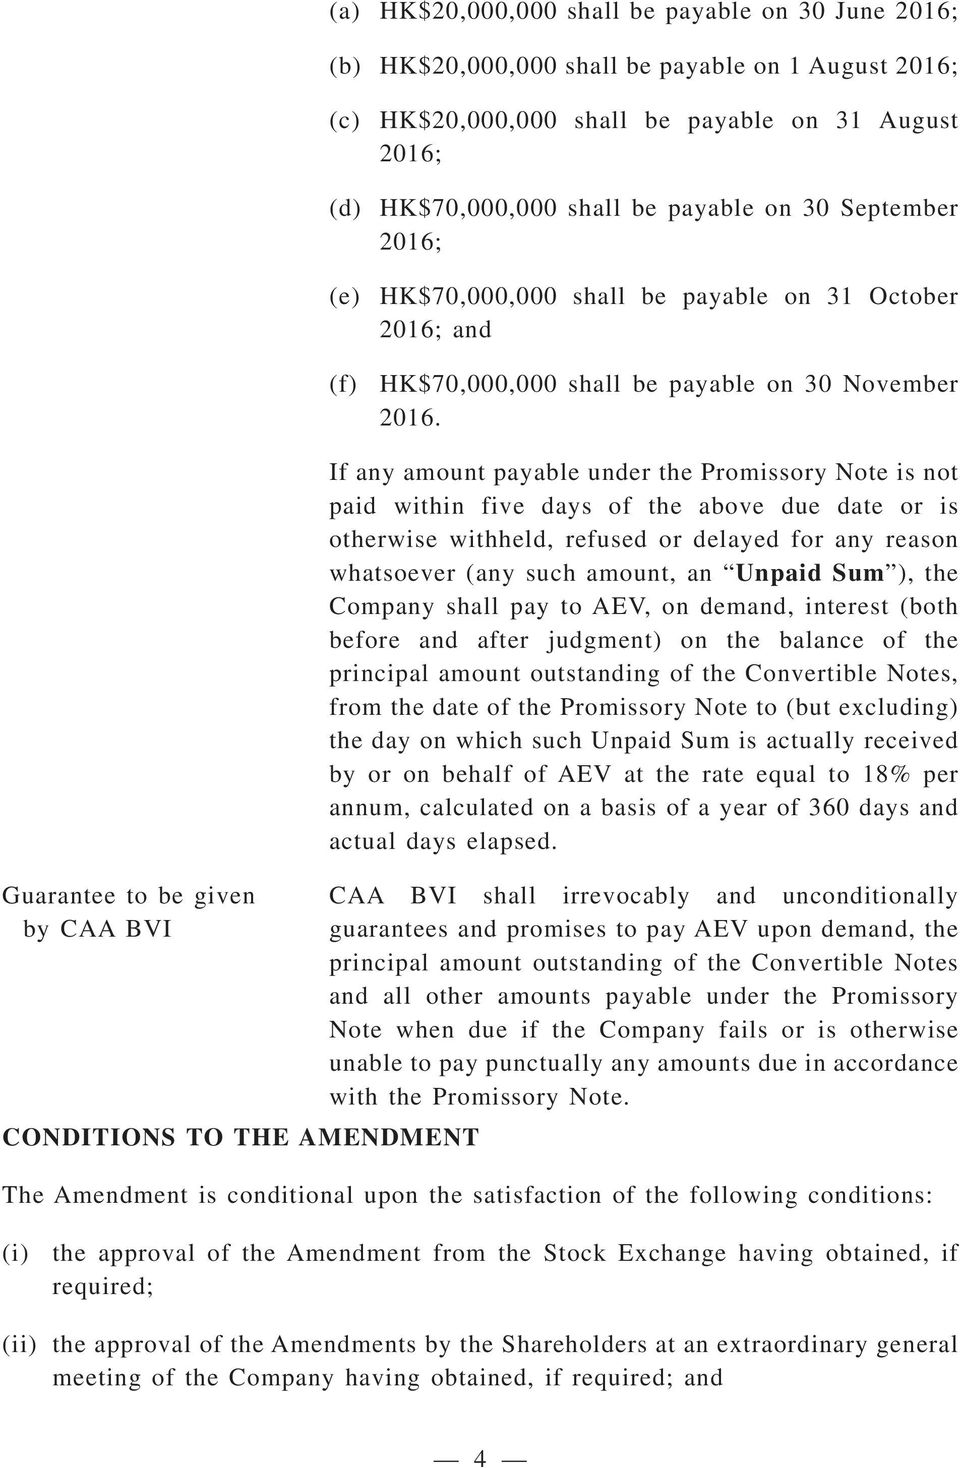 Guarantee to be given by CAA BVI CONDITIONS TO THE AMENDMENT If any amount payable under the Promissory Note is not paid within five days of the above due date or is otherwise withheld, refused or